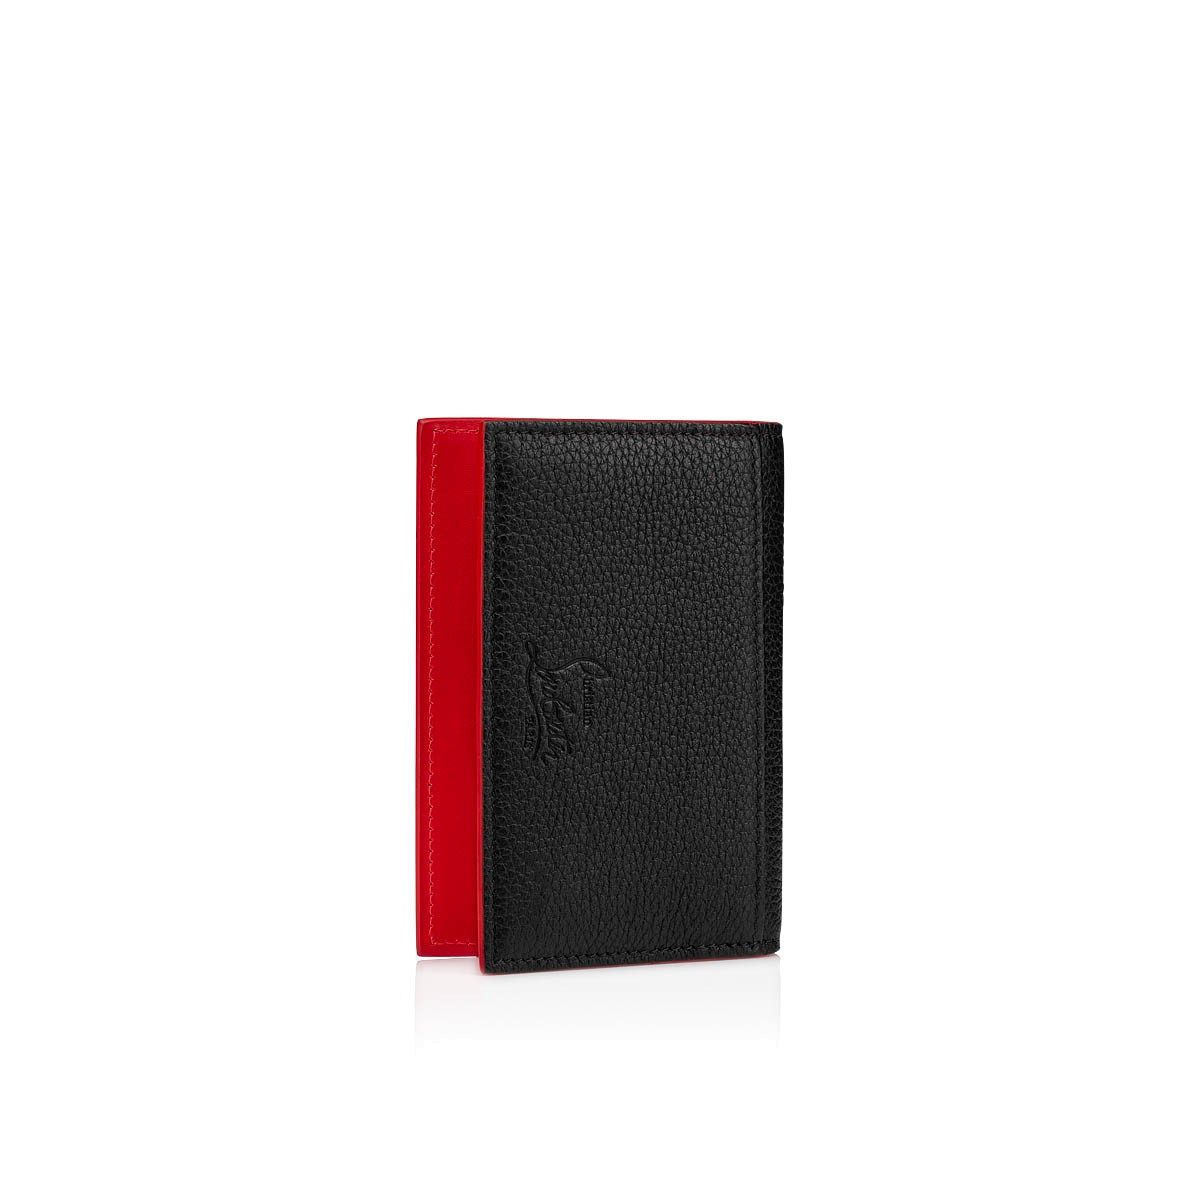 Small Leather Goods - Sifnos Card Holder - Christian Louboutin